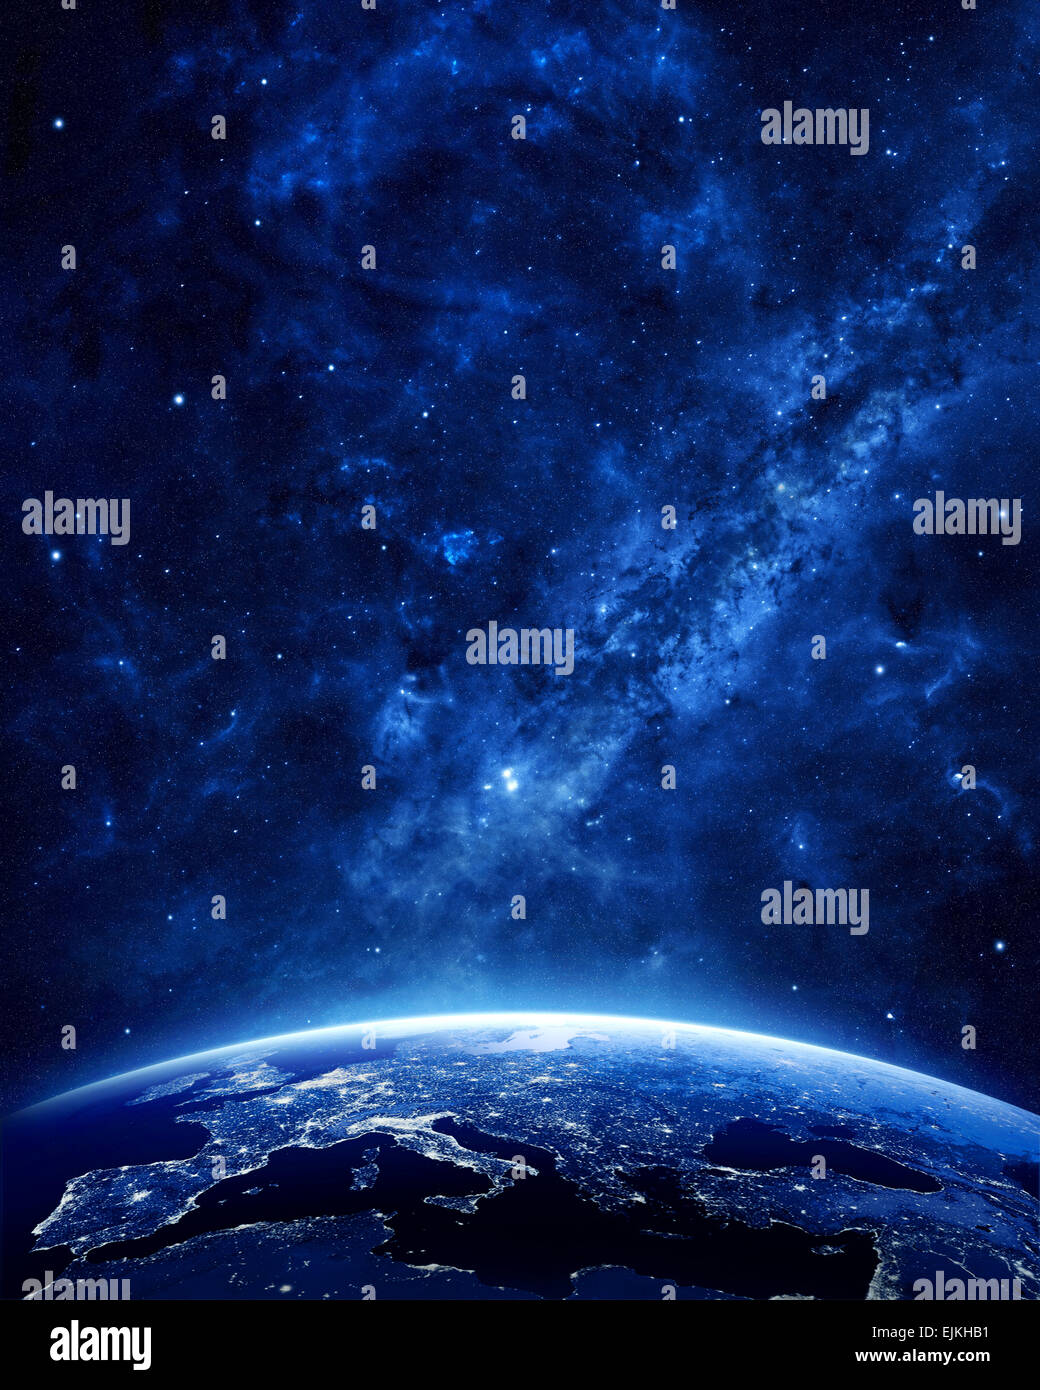 Earth at night as seen from space with blue, glowing atmosphere and space at the top. Perfect for illustrations. - Stock Image